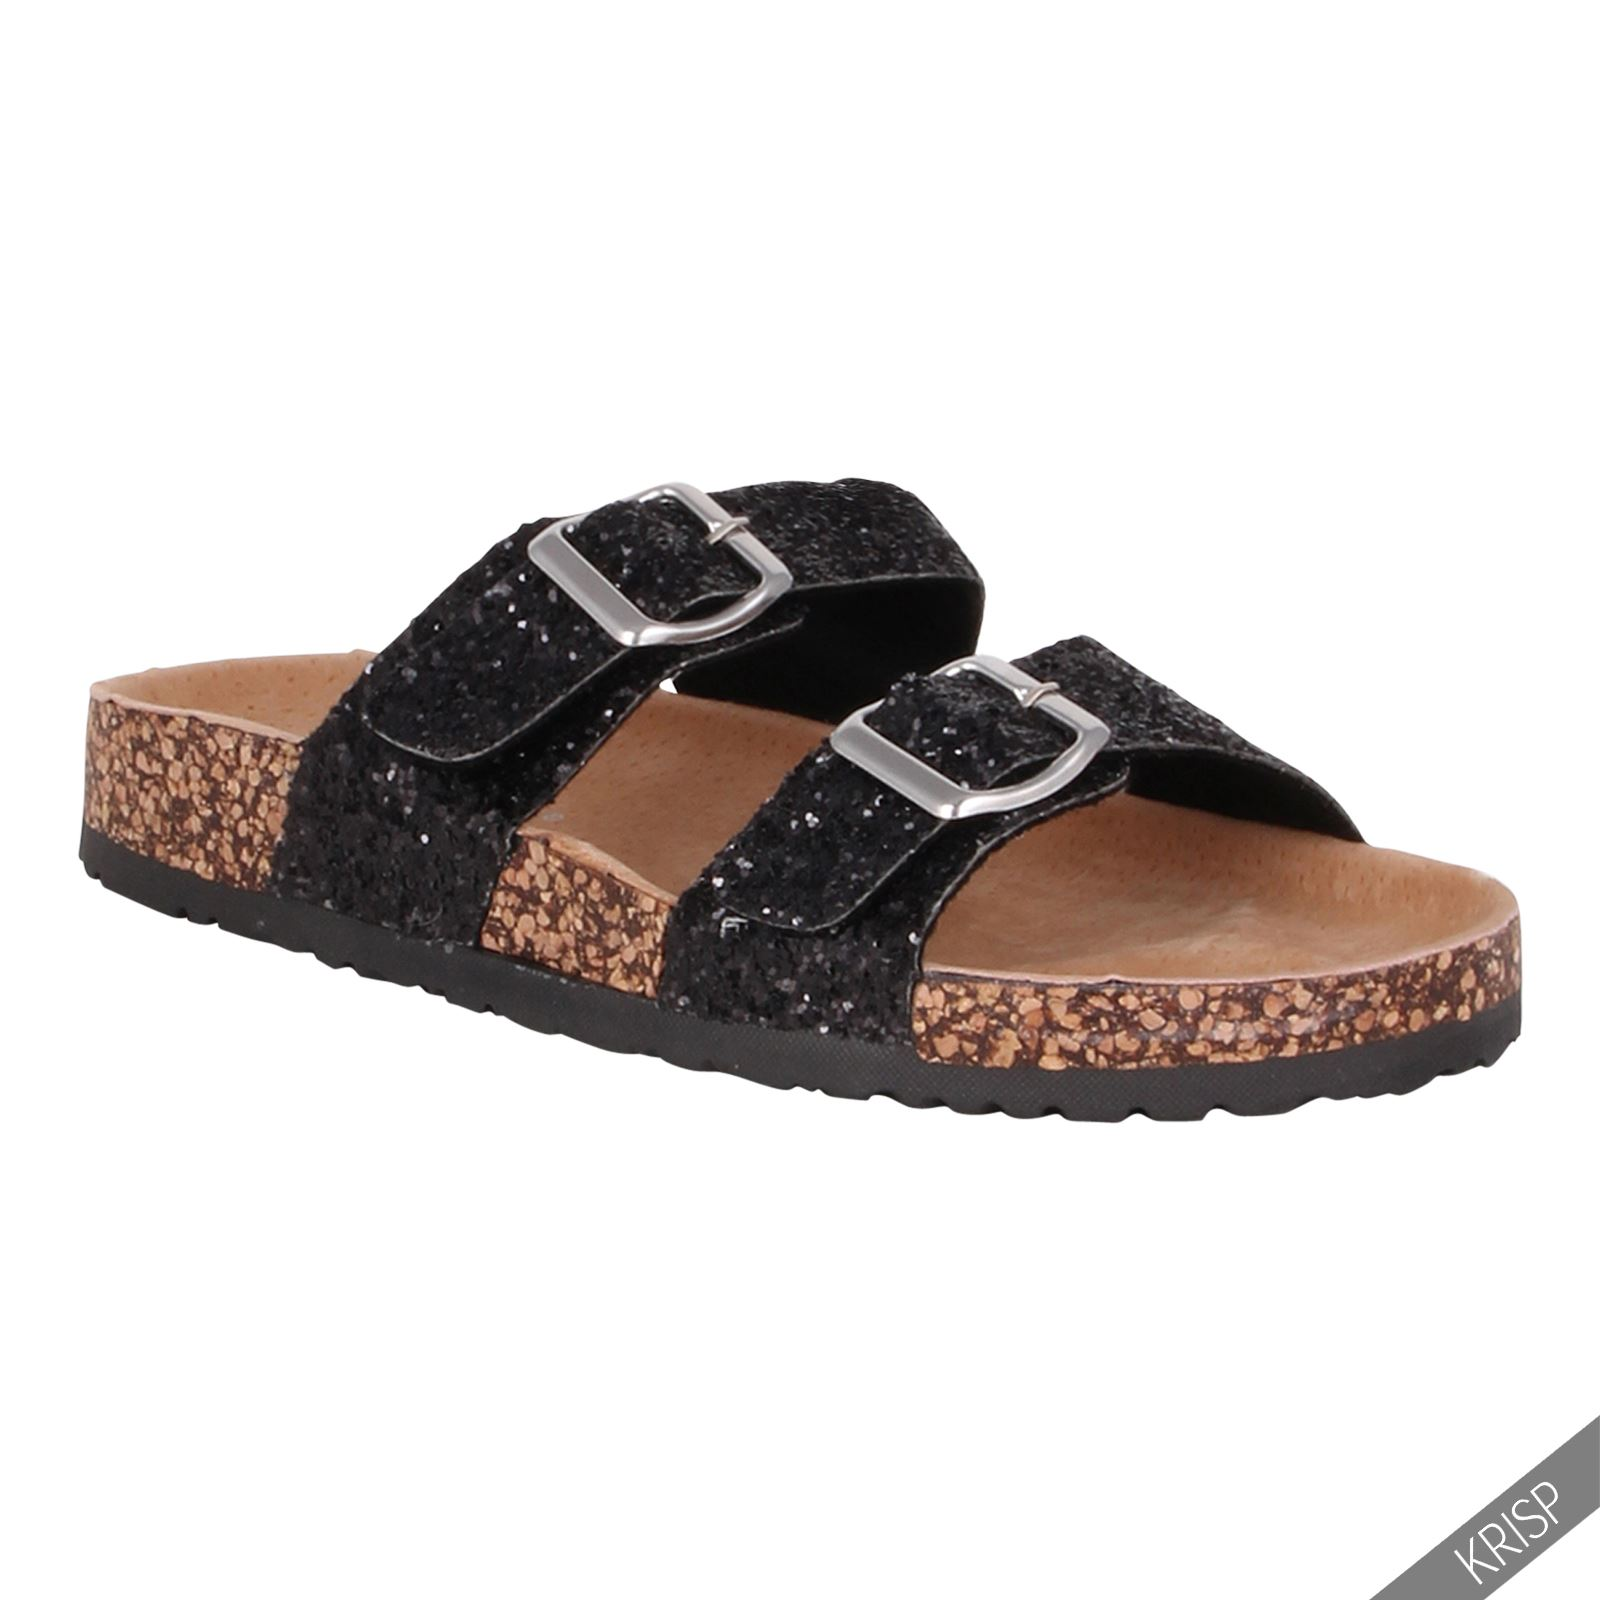 Discover the hottest new Skechers women's shoes, including brands like Skechers BOBS, Skechers GOwalk, Flex Appeal and Memory Foam shoes. Free shipping both ways!